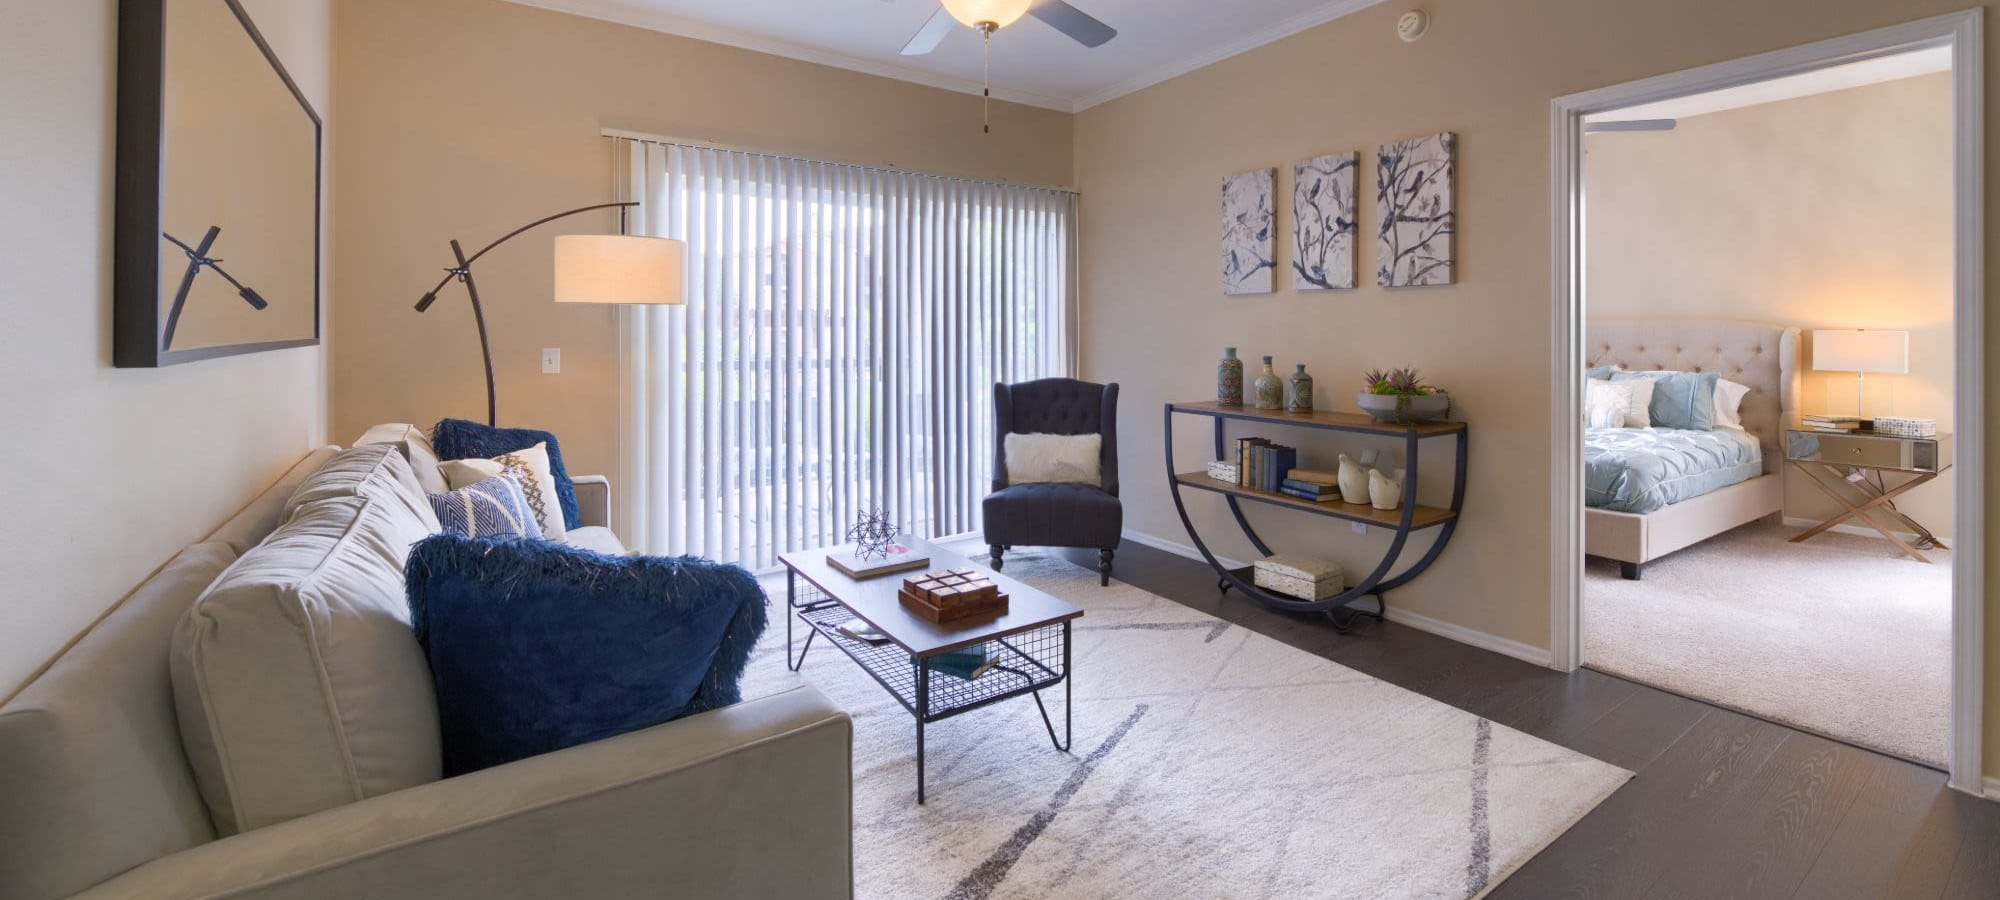 Schedule a tour of Whisper Creek Apartment Homes in Lakewood, Colorado